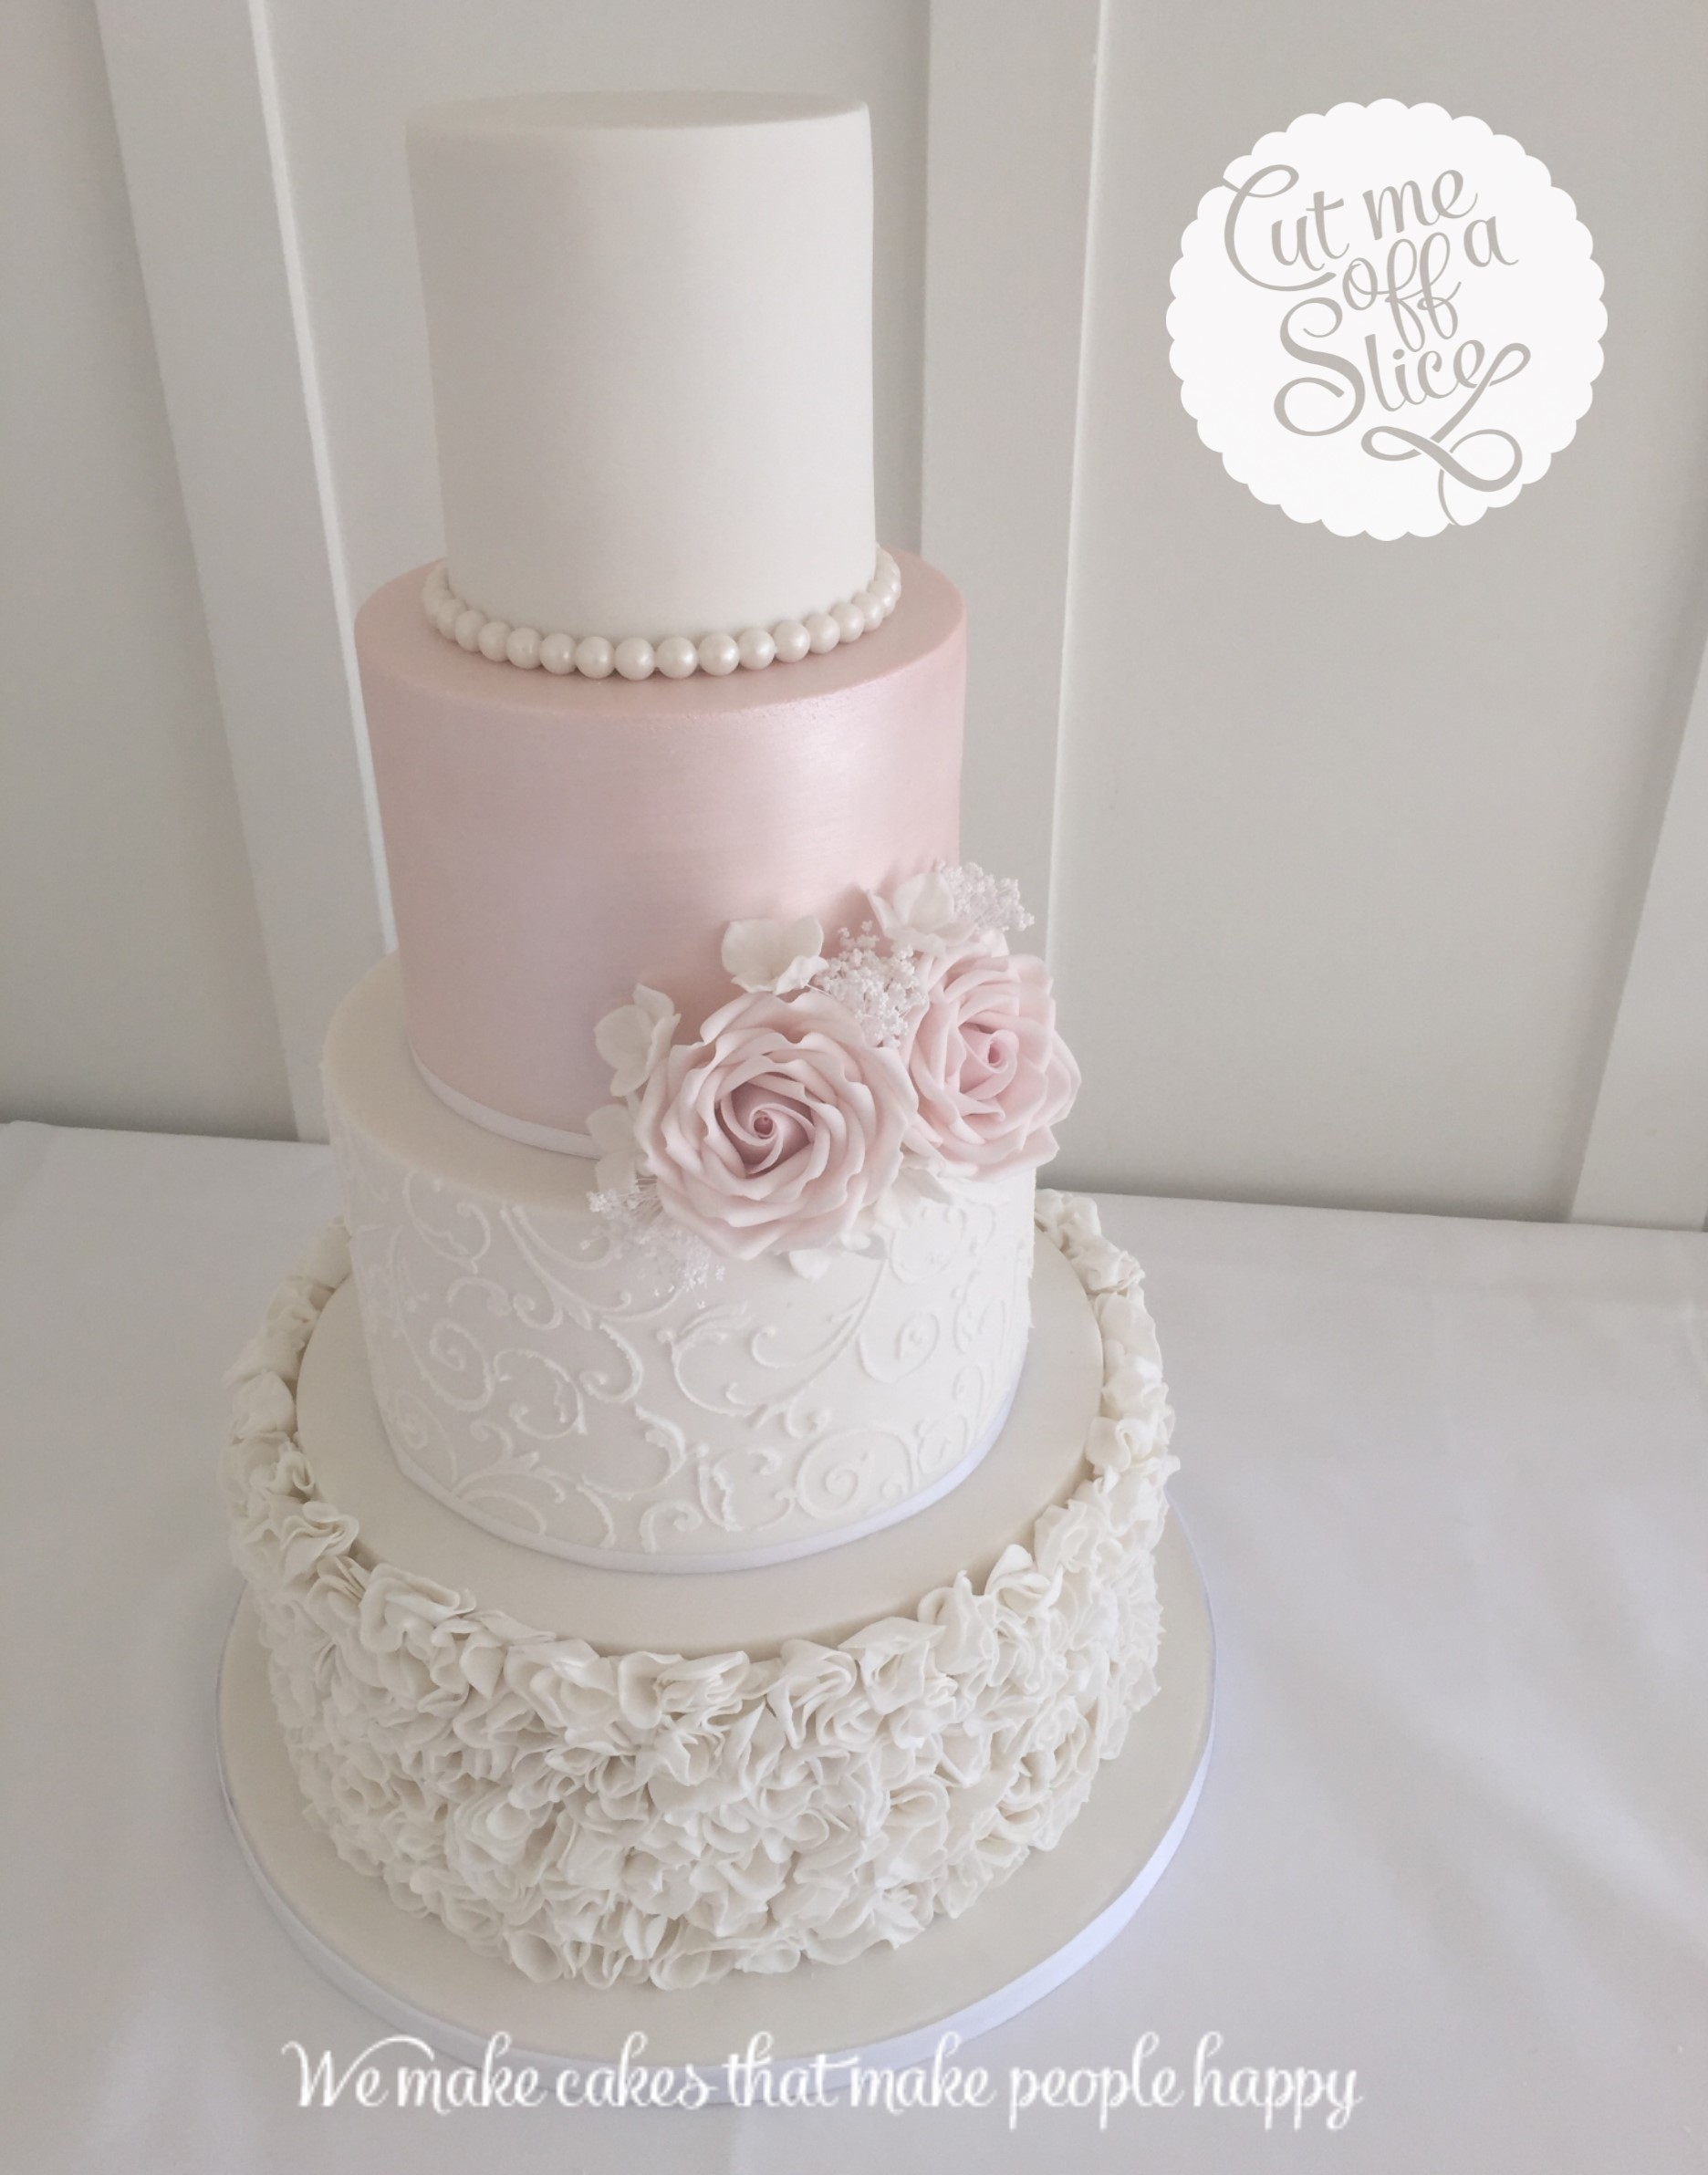 pink and white wedding cake designs bespoke wedding cake by cut me a slice 18560